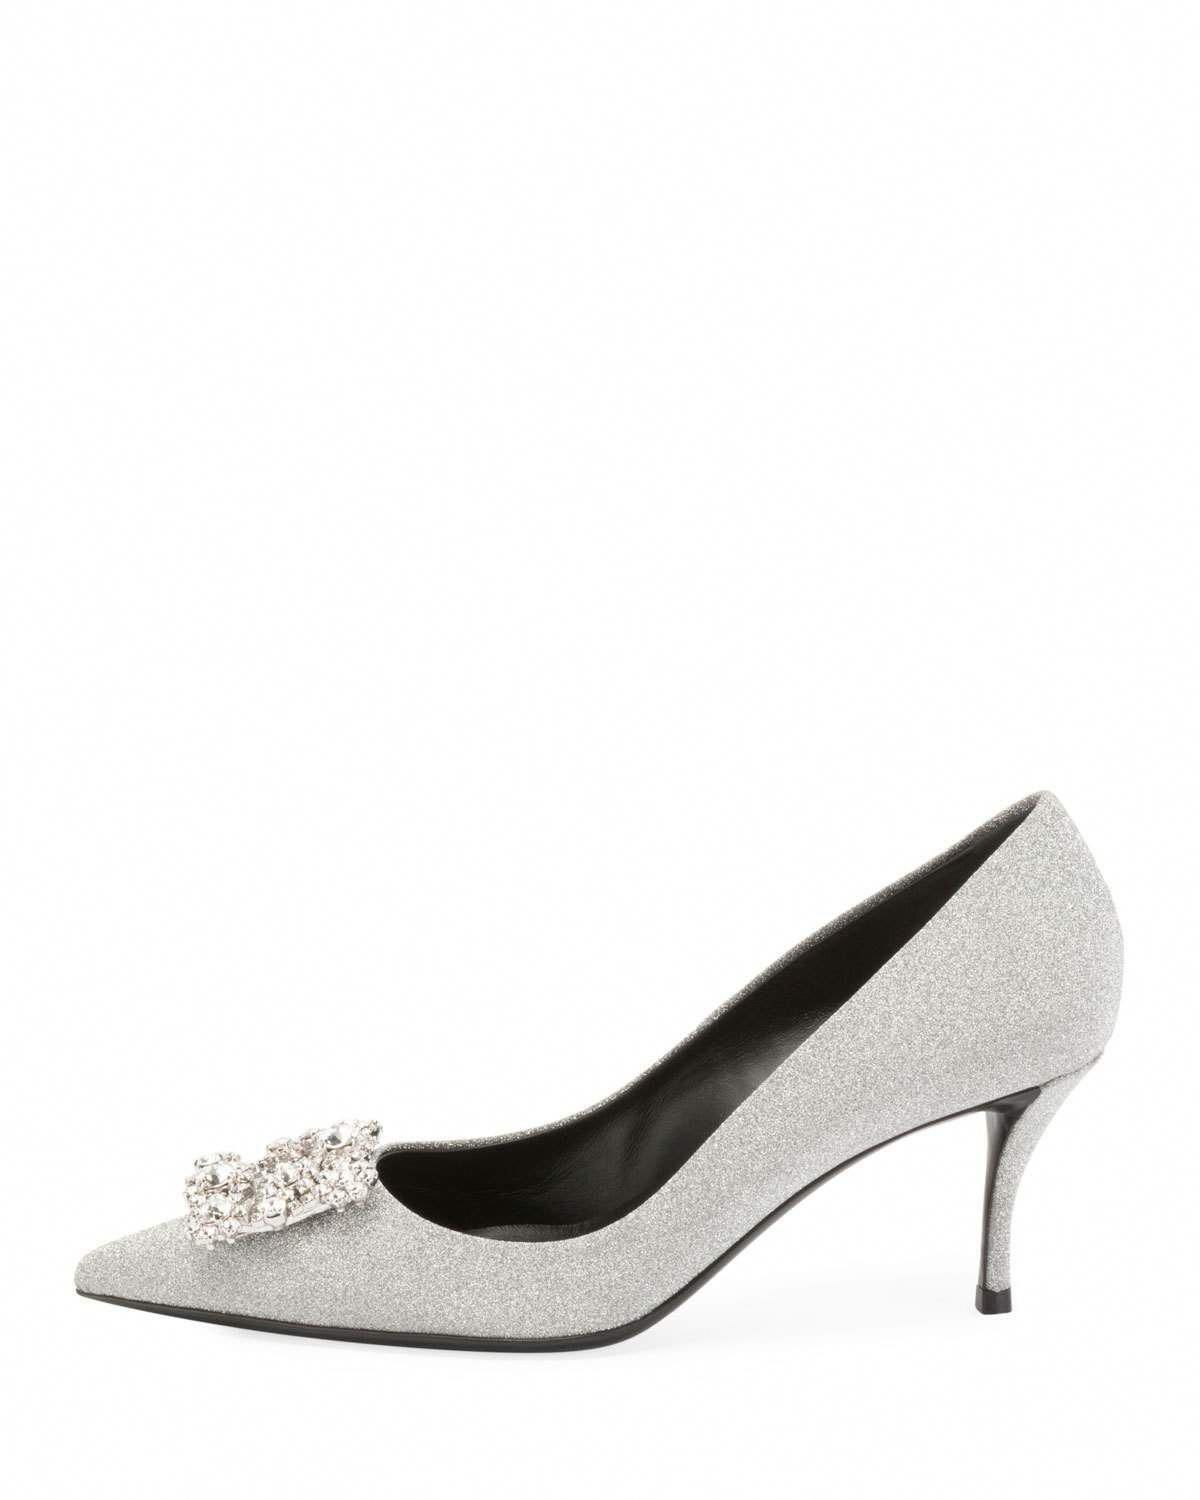 1fcad75b302 Roger Vivier Glitter Fabric Flower-Crystal Buckle Pumps  RogerVivier ...